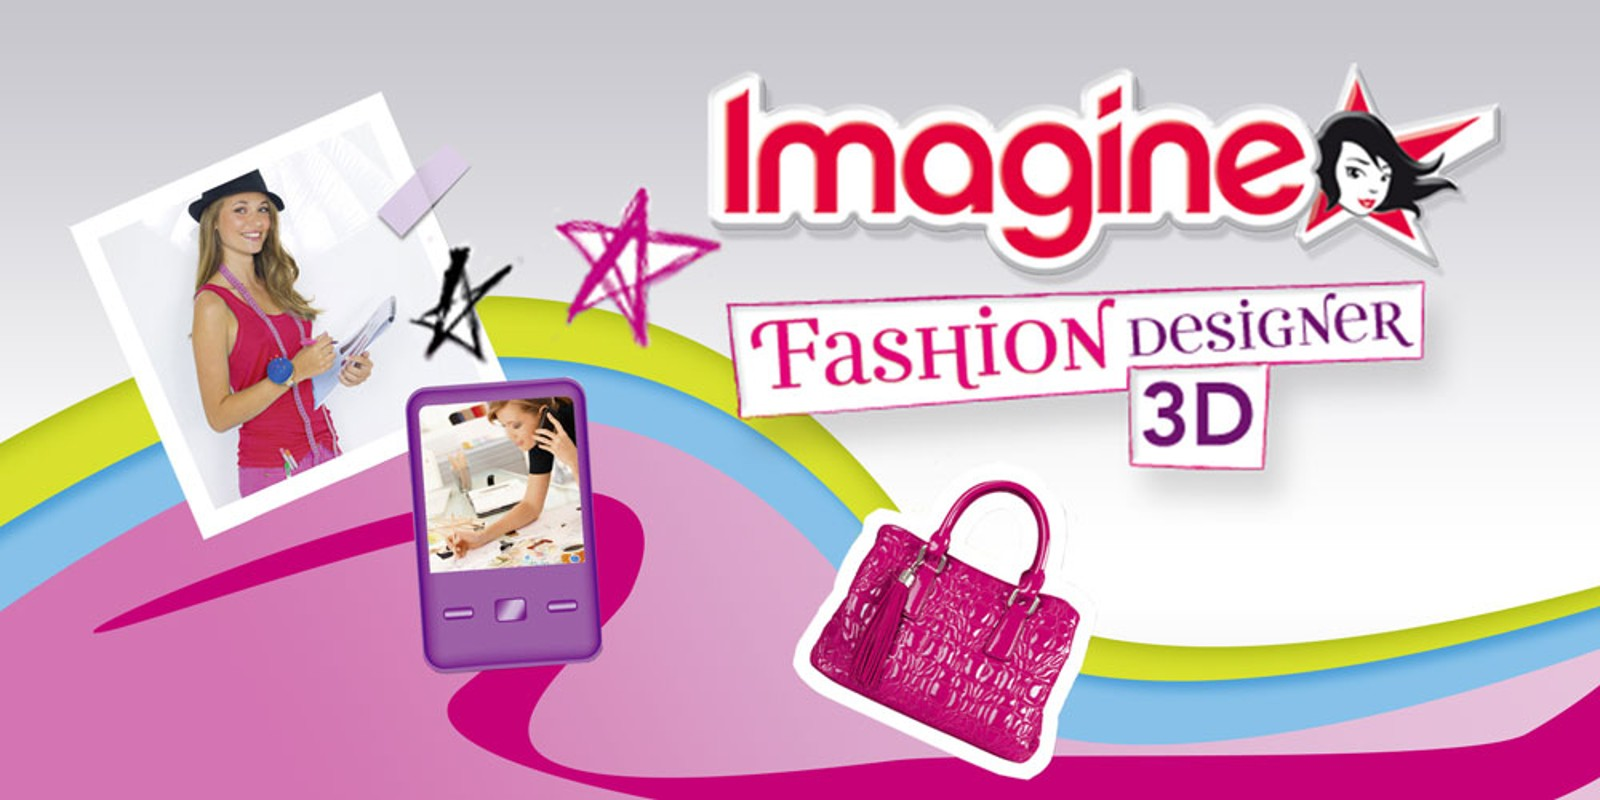 Imagine fashion designer new york game 5